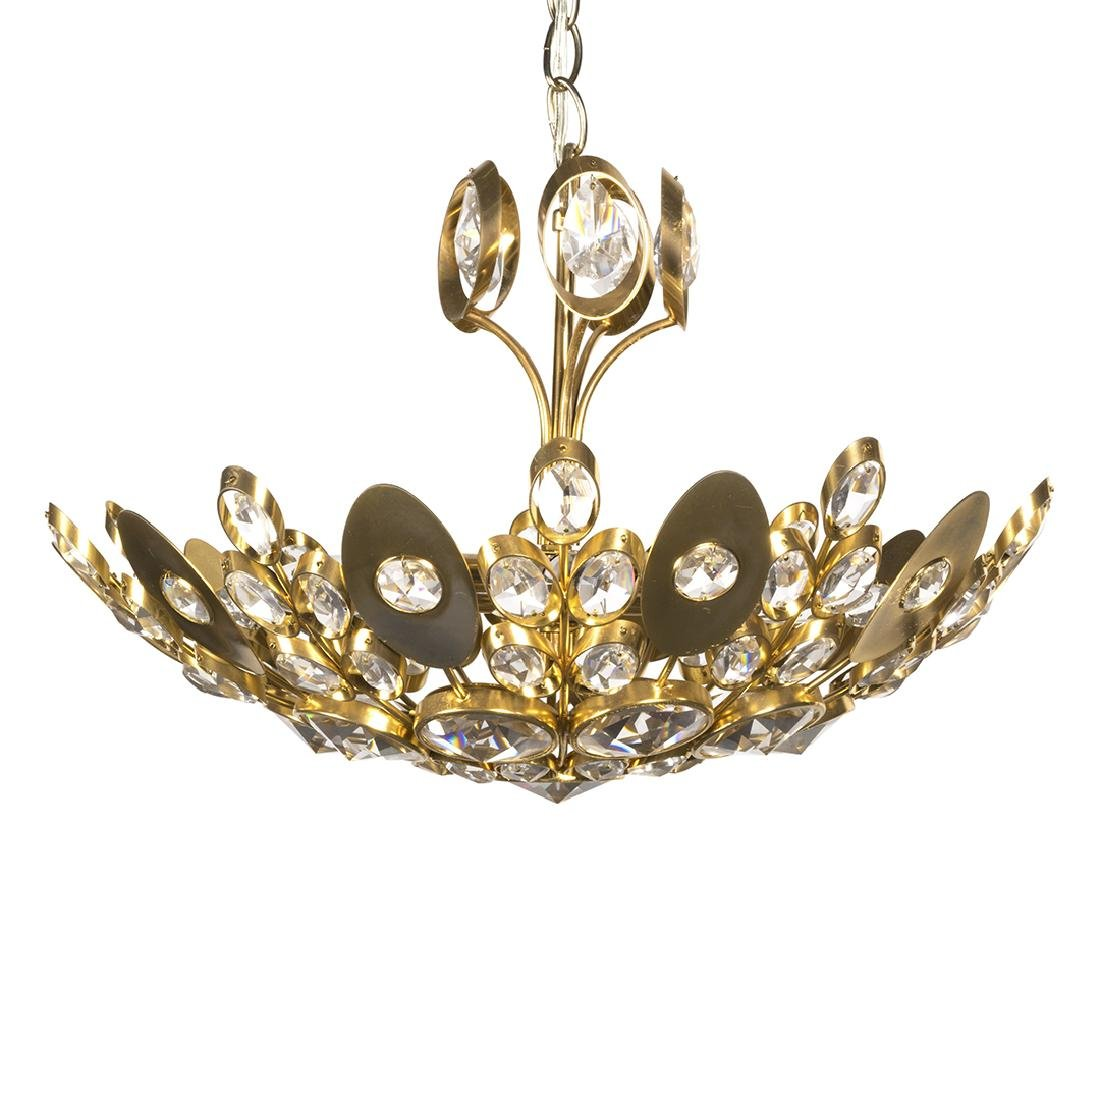 Italian Crystal and Brass Dome Light